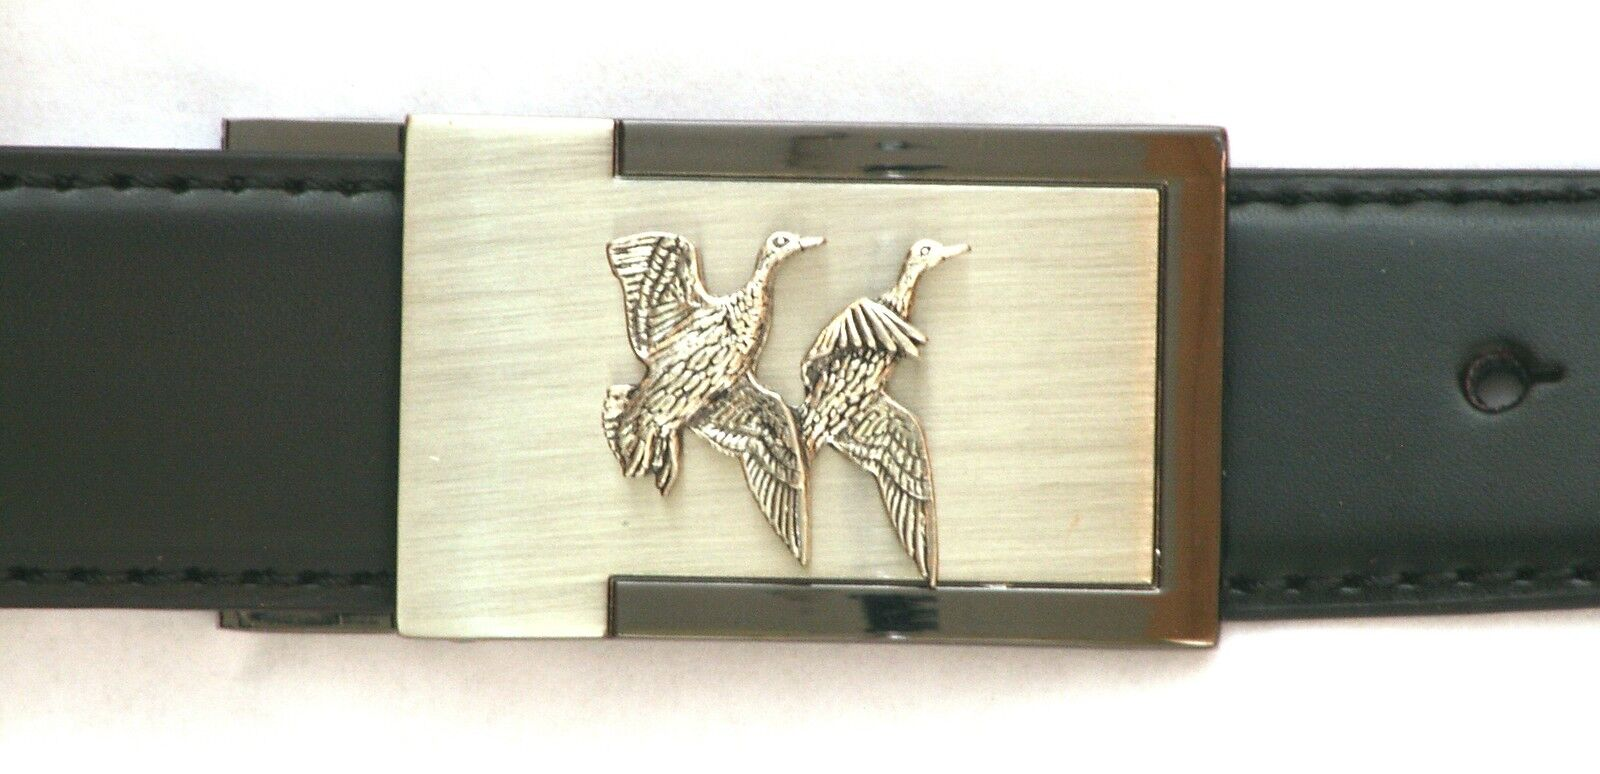 Pair of Ducks Belt Buckle and Leather Belt in Tin Ideal Shooting Present 111